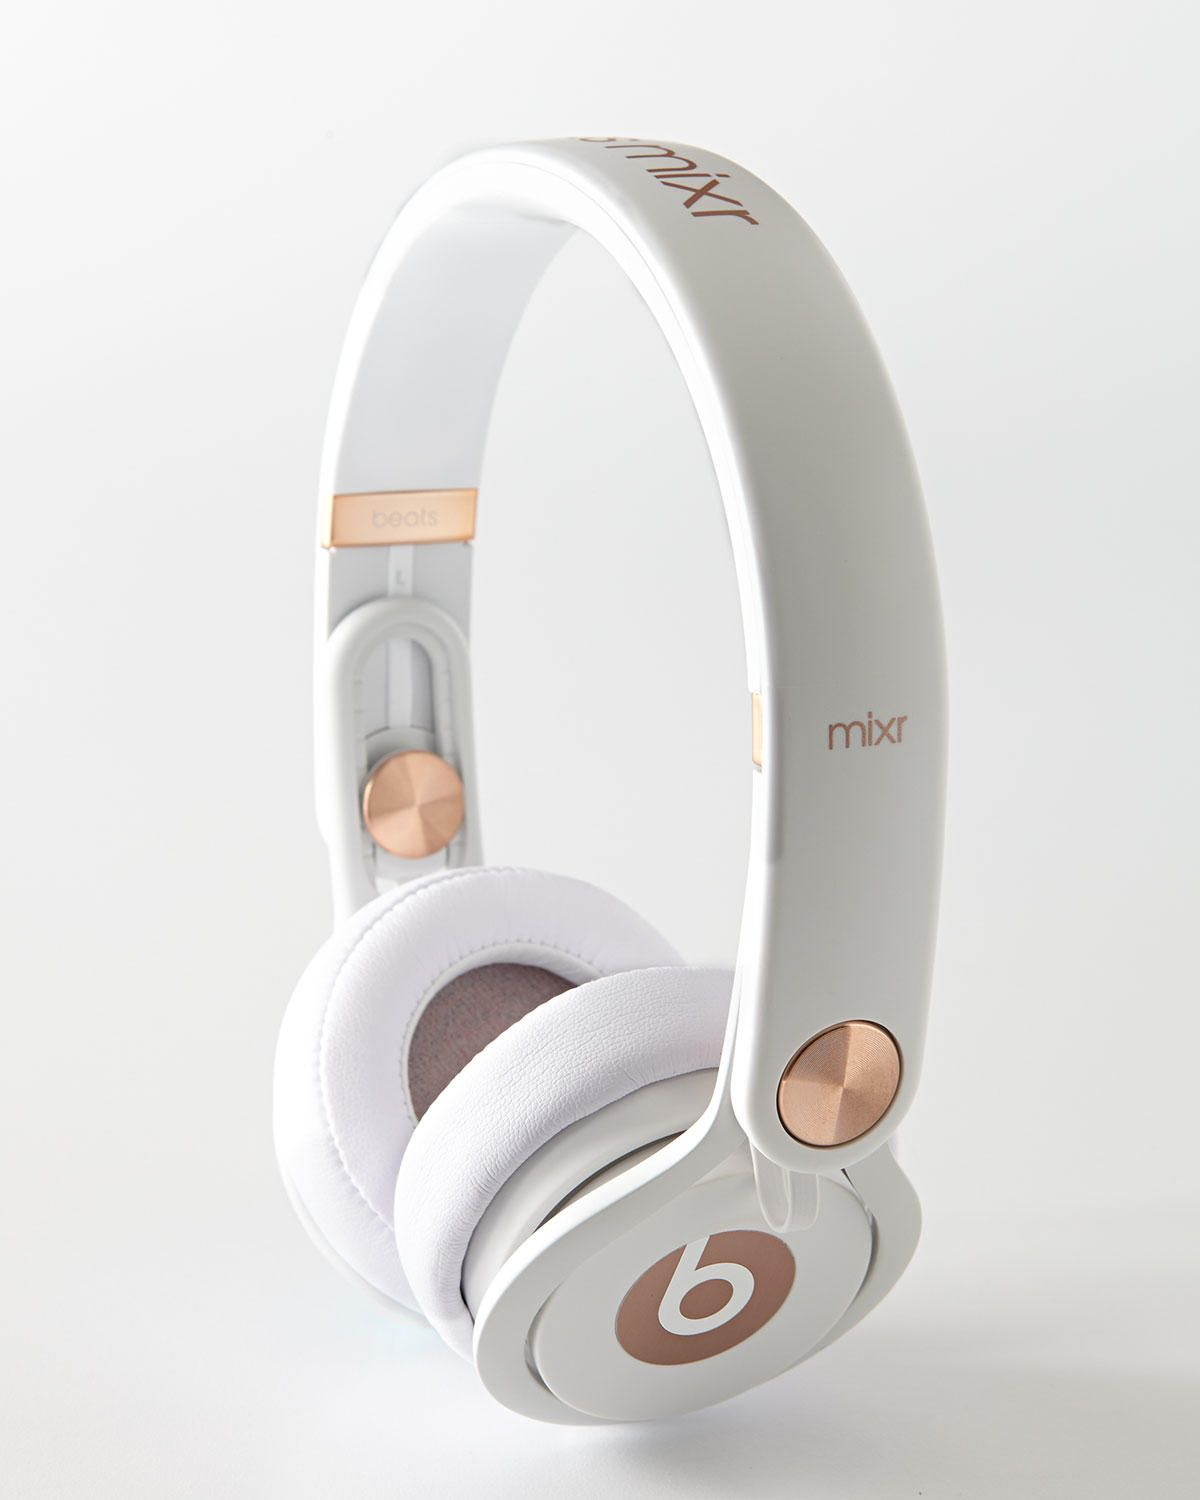 Rose-Gold-Tone Beats On-Ear Headphones - Beats By Dr. Dre  3ea308c67